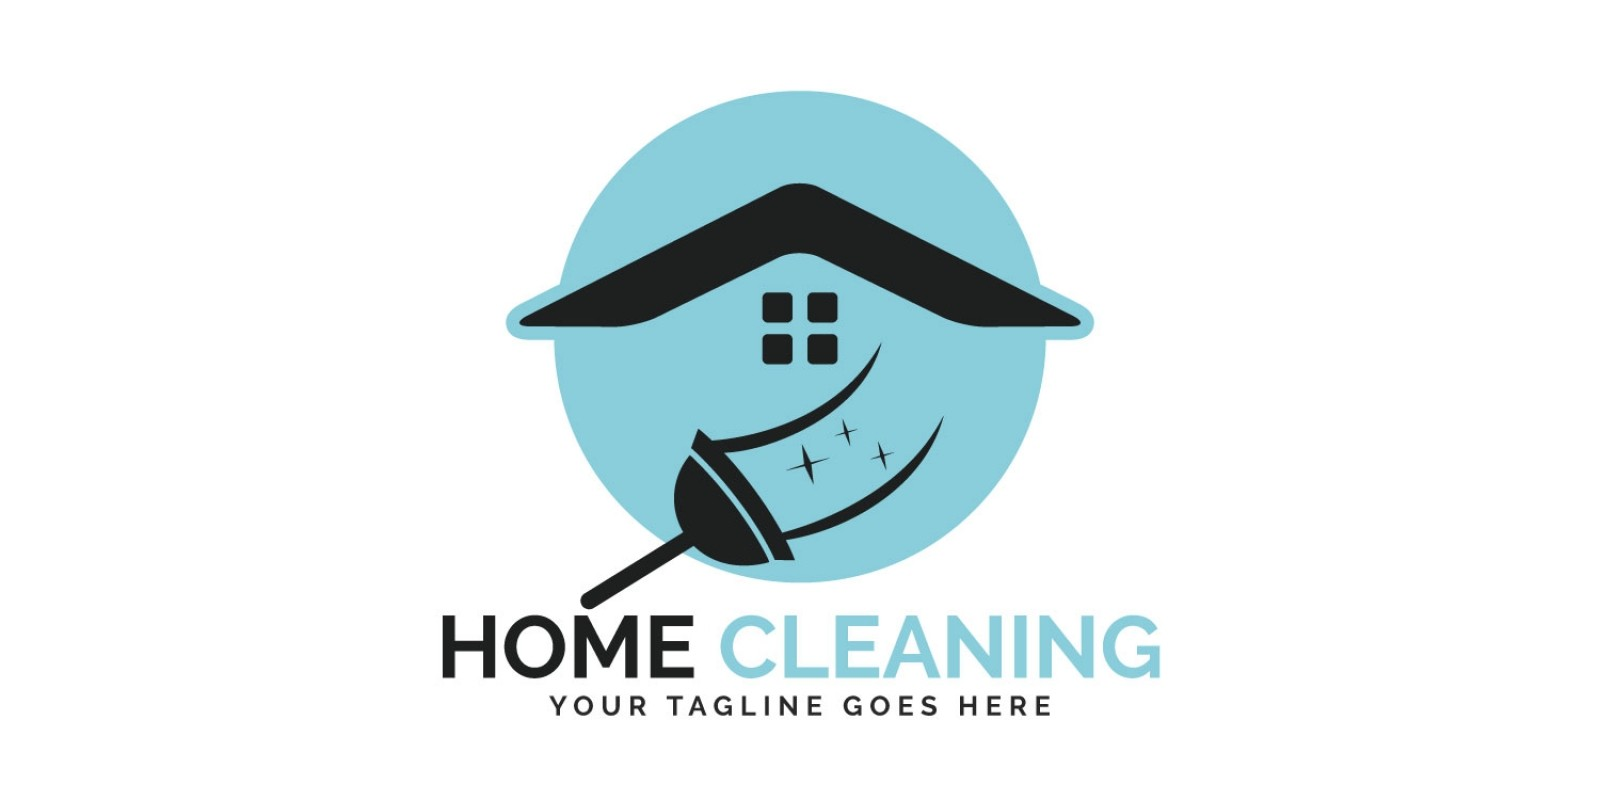 Home Cleaning Vector Logo Design